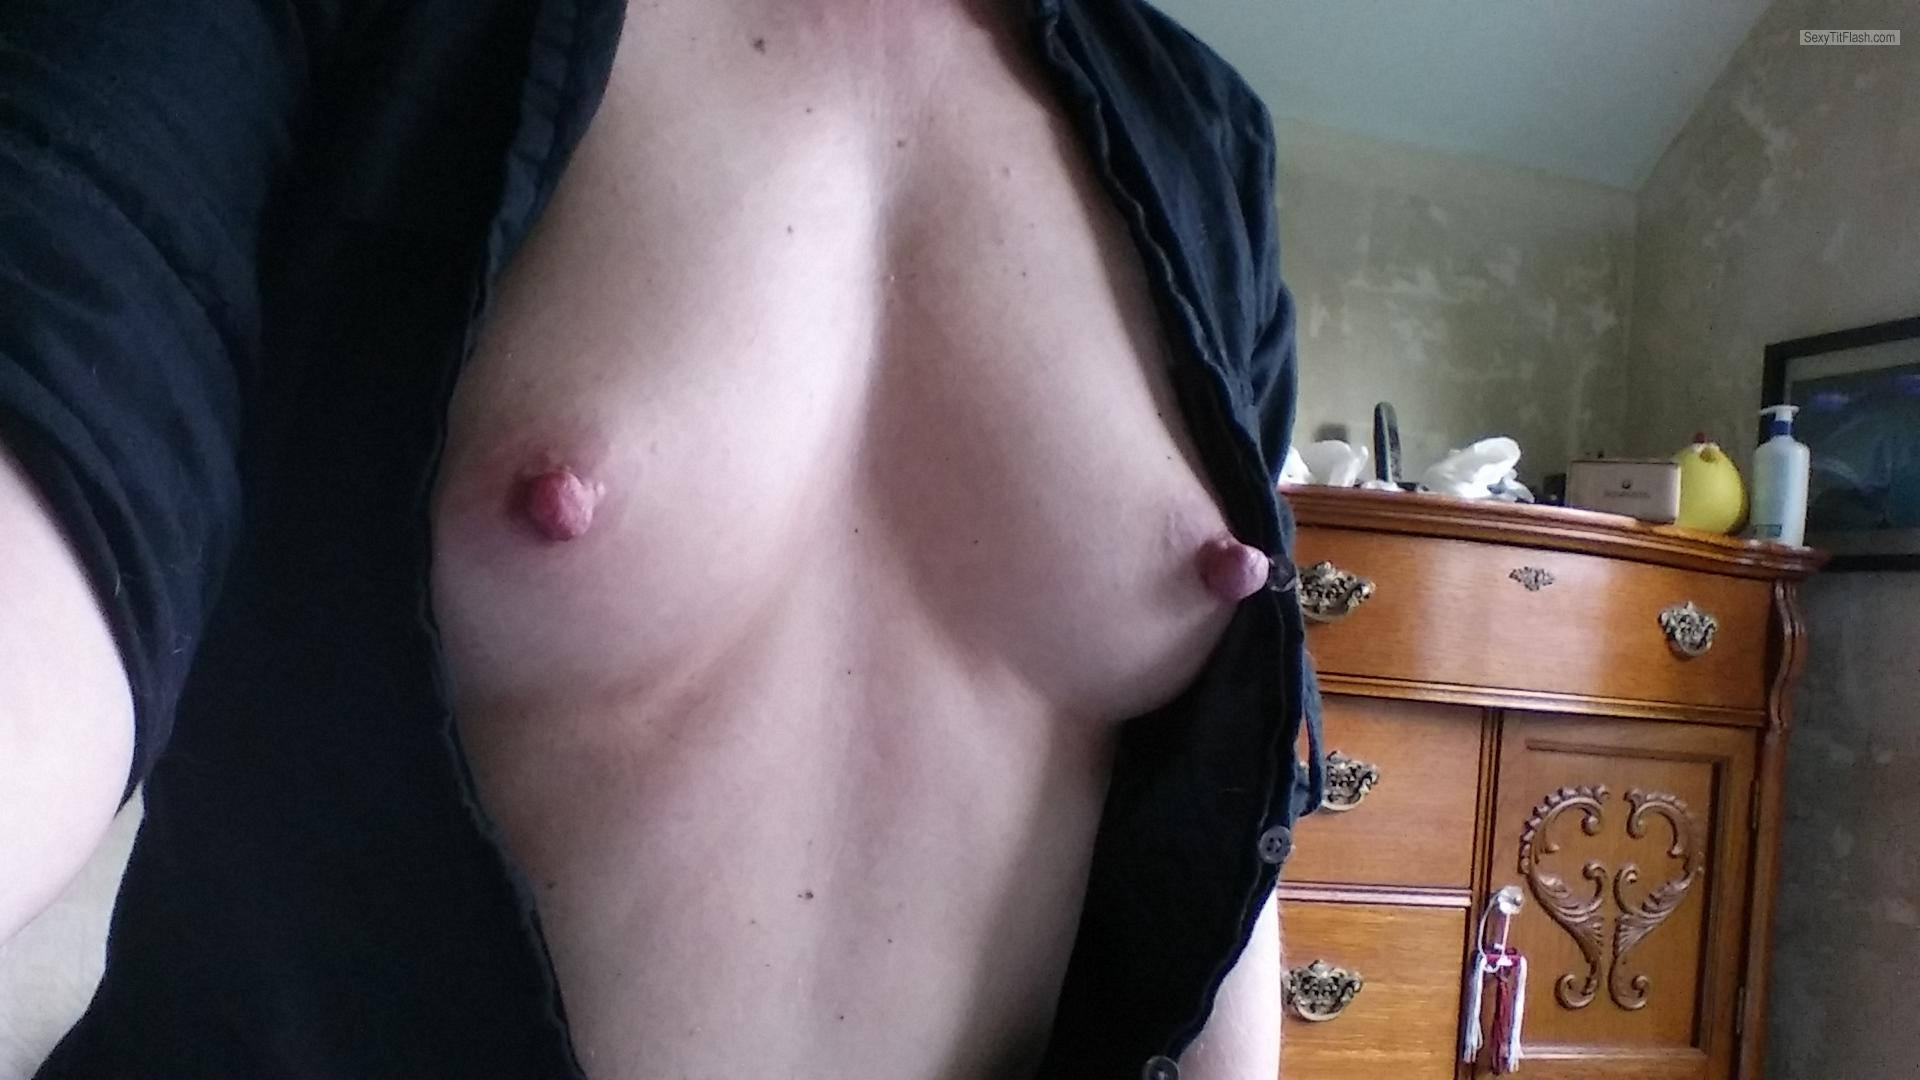 Tit Flash: My Small Tits (Selfie) - Lovelylittlepert from United States